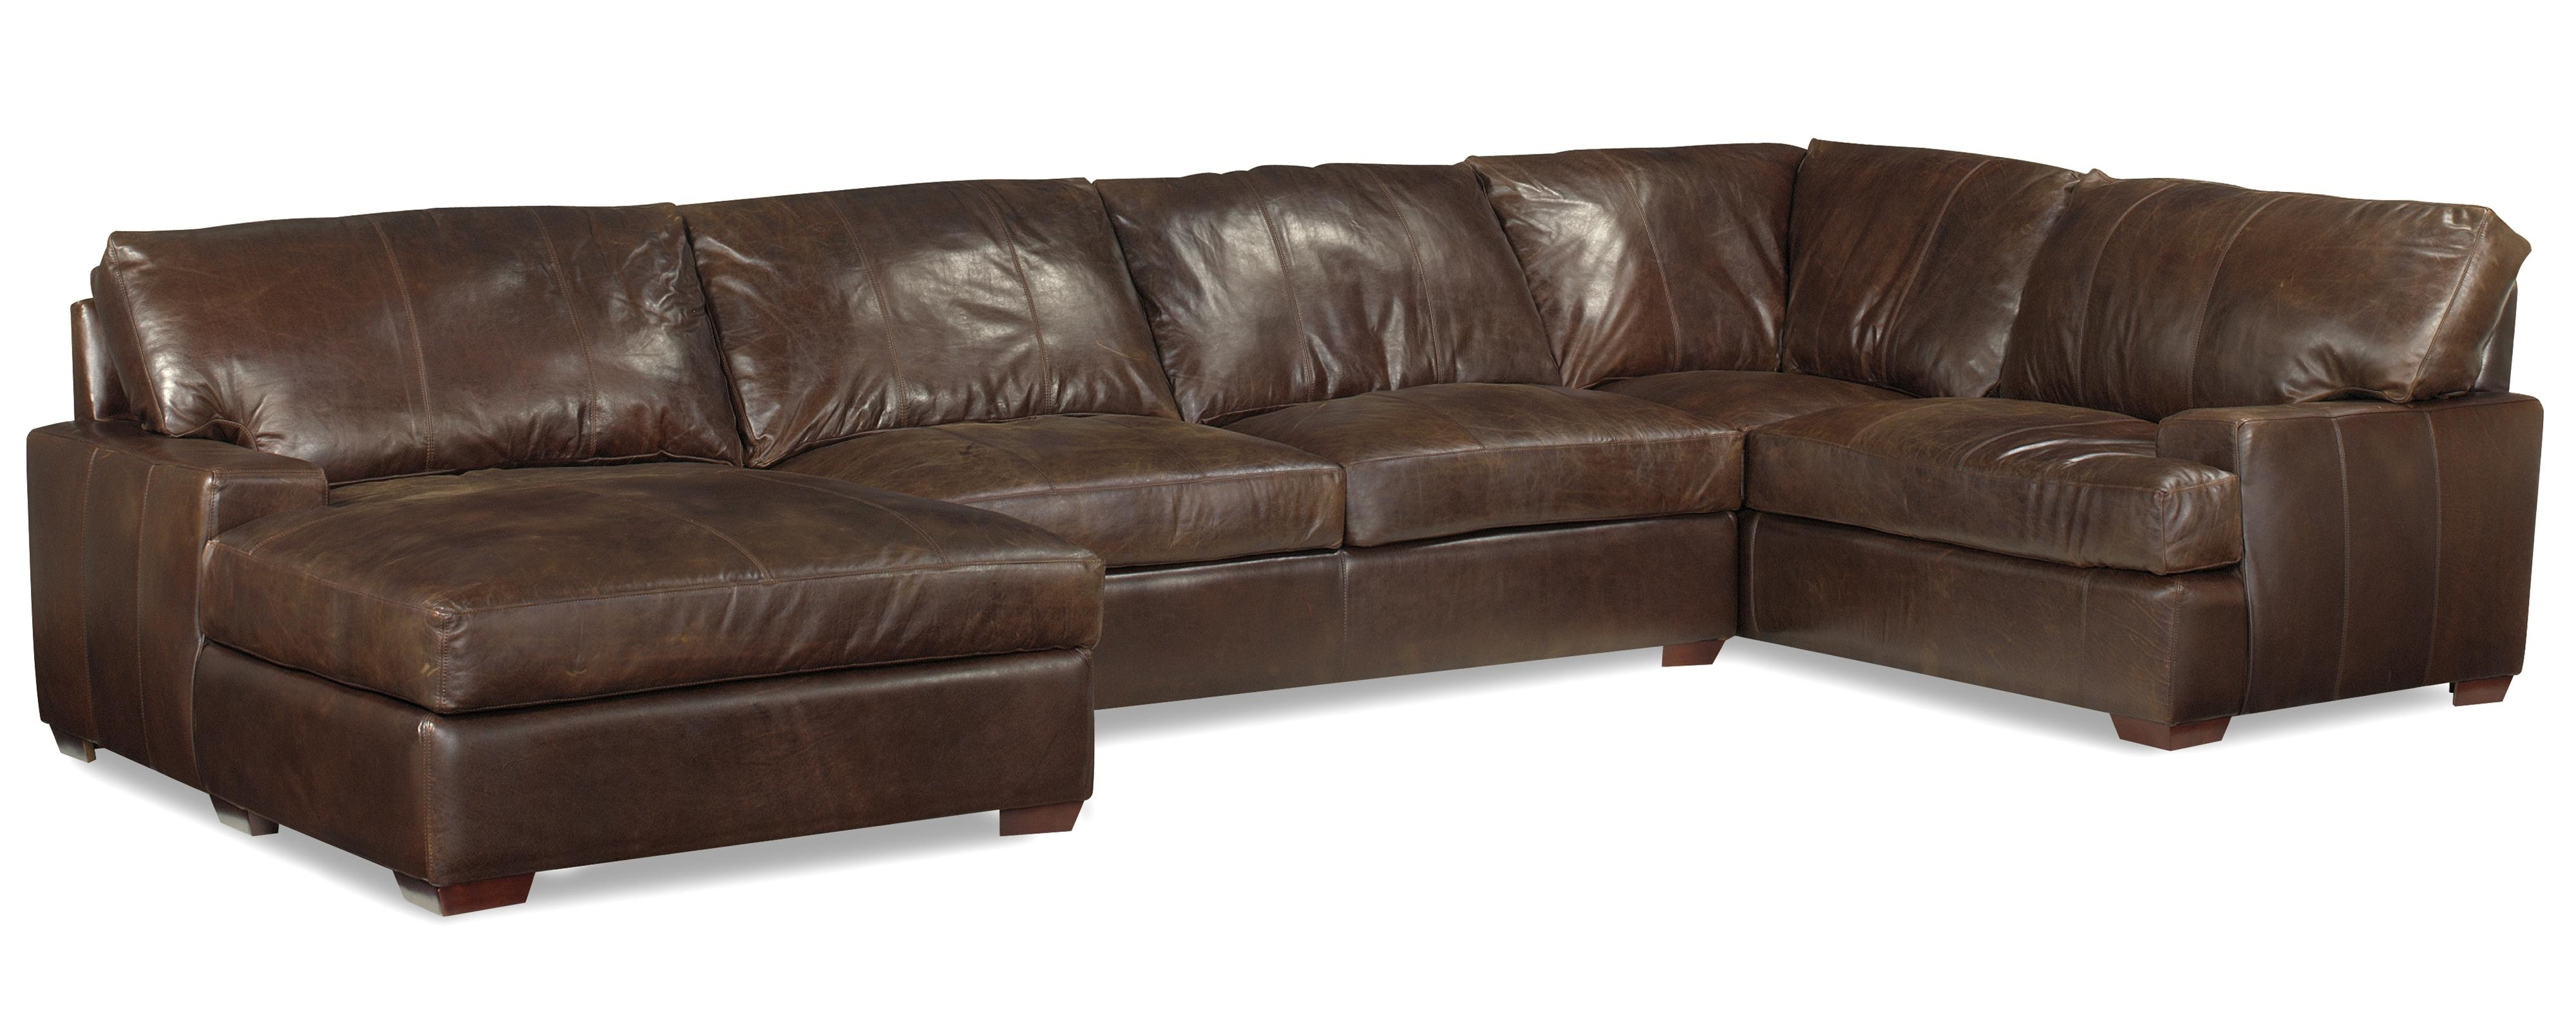 Latest Usa Premium Leather 3635 Track Arm Sofa Chaise Sectional W/ Block Within Leather Sofa Chaises (View 2 of 15)